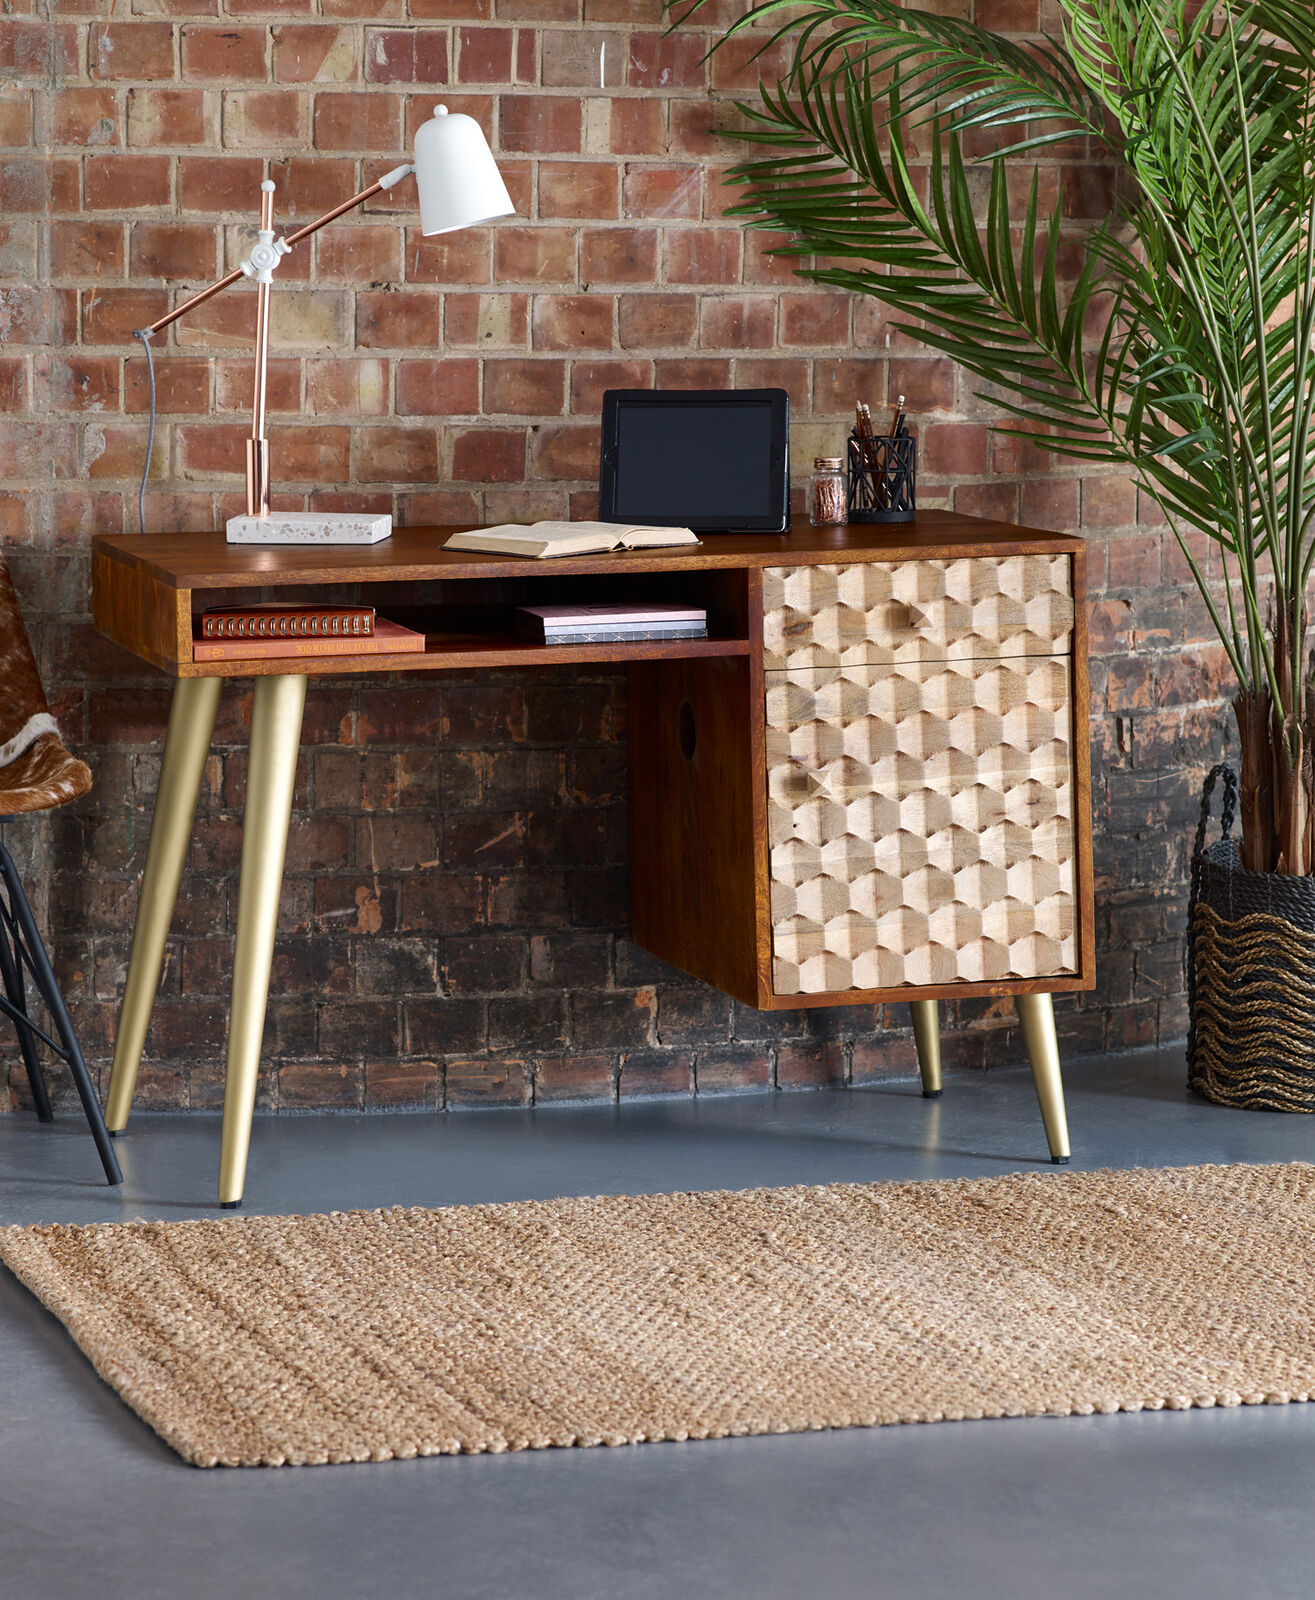 Details about Edison Office Desk With Drawers Walnut Gold Solid Mango Wood Retro Scandi Style